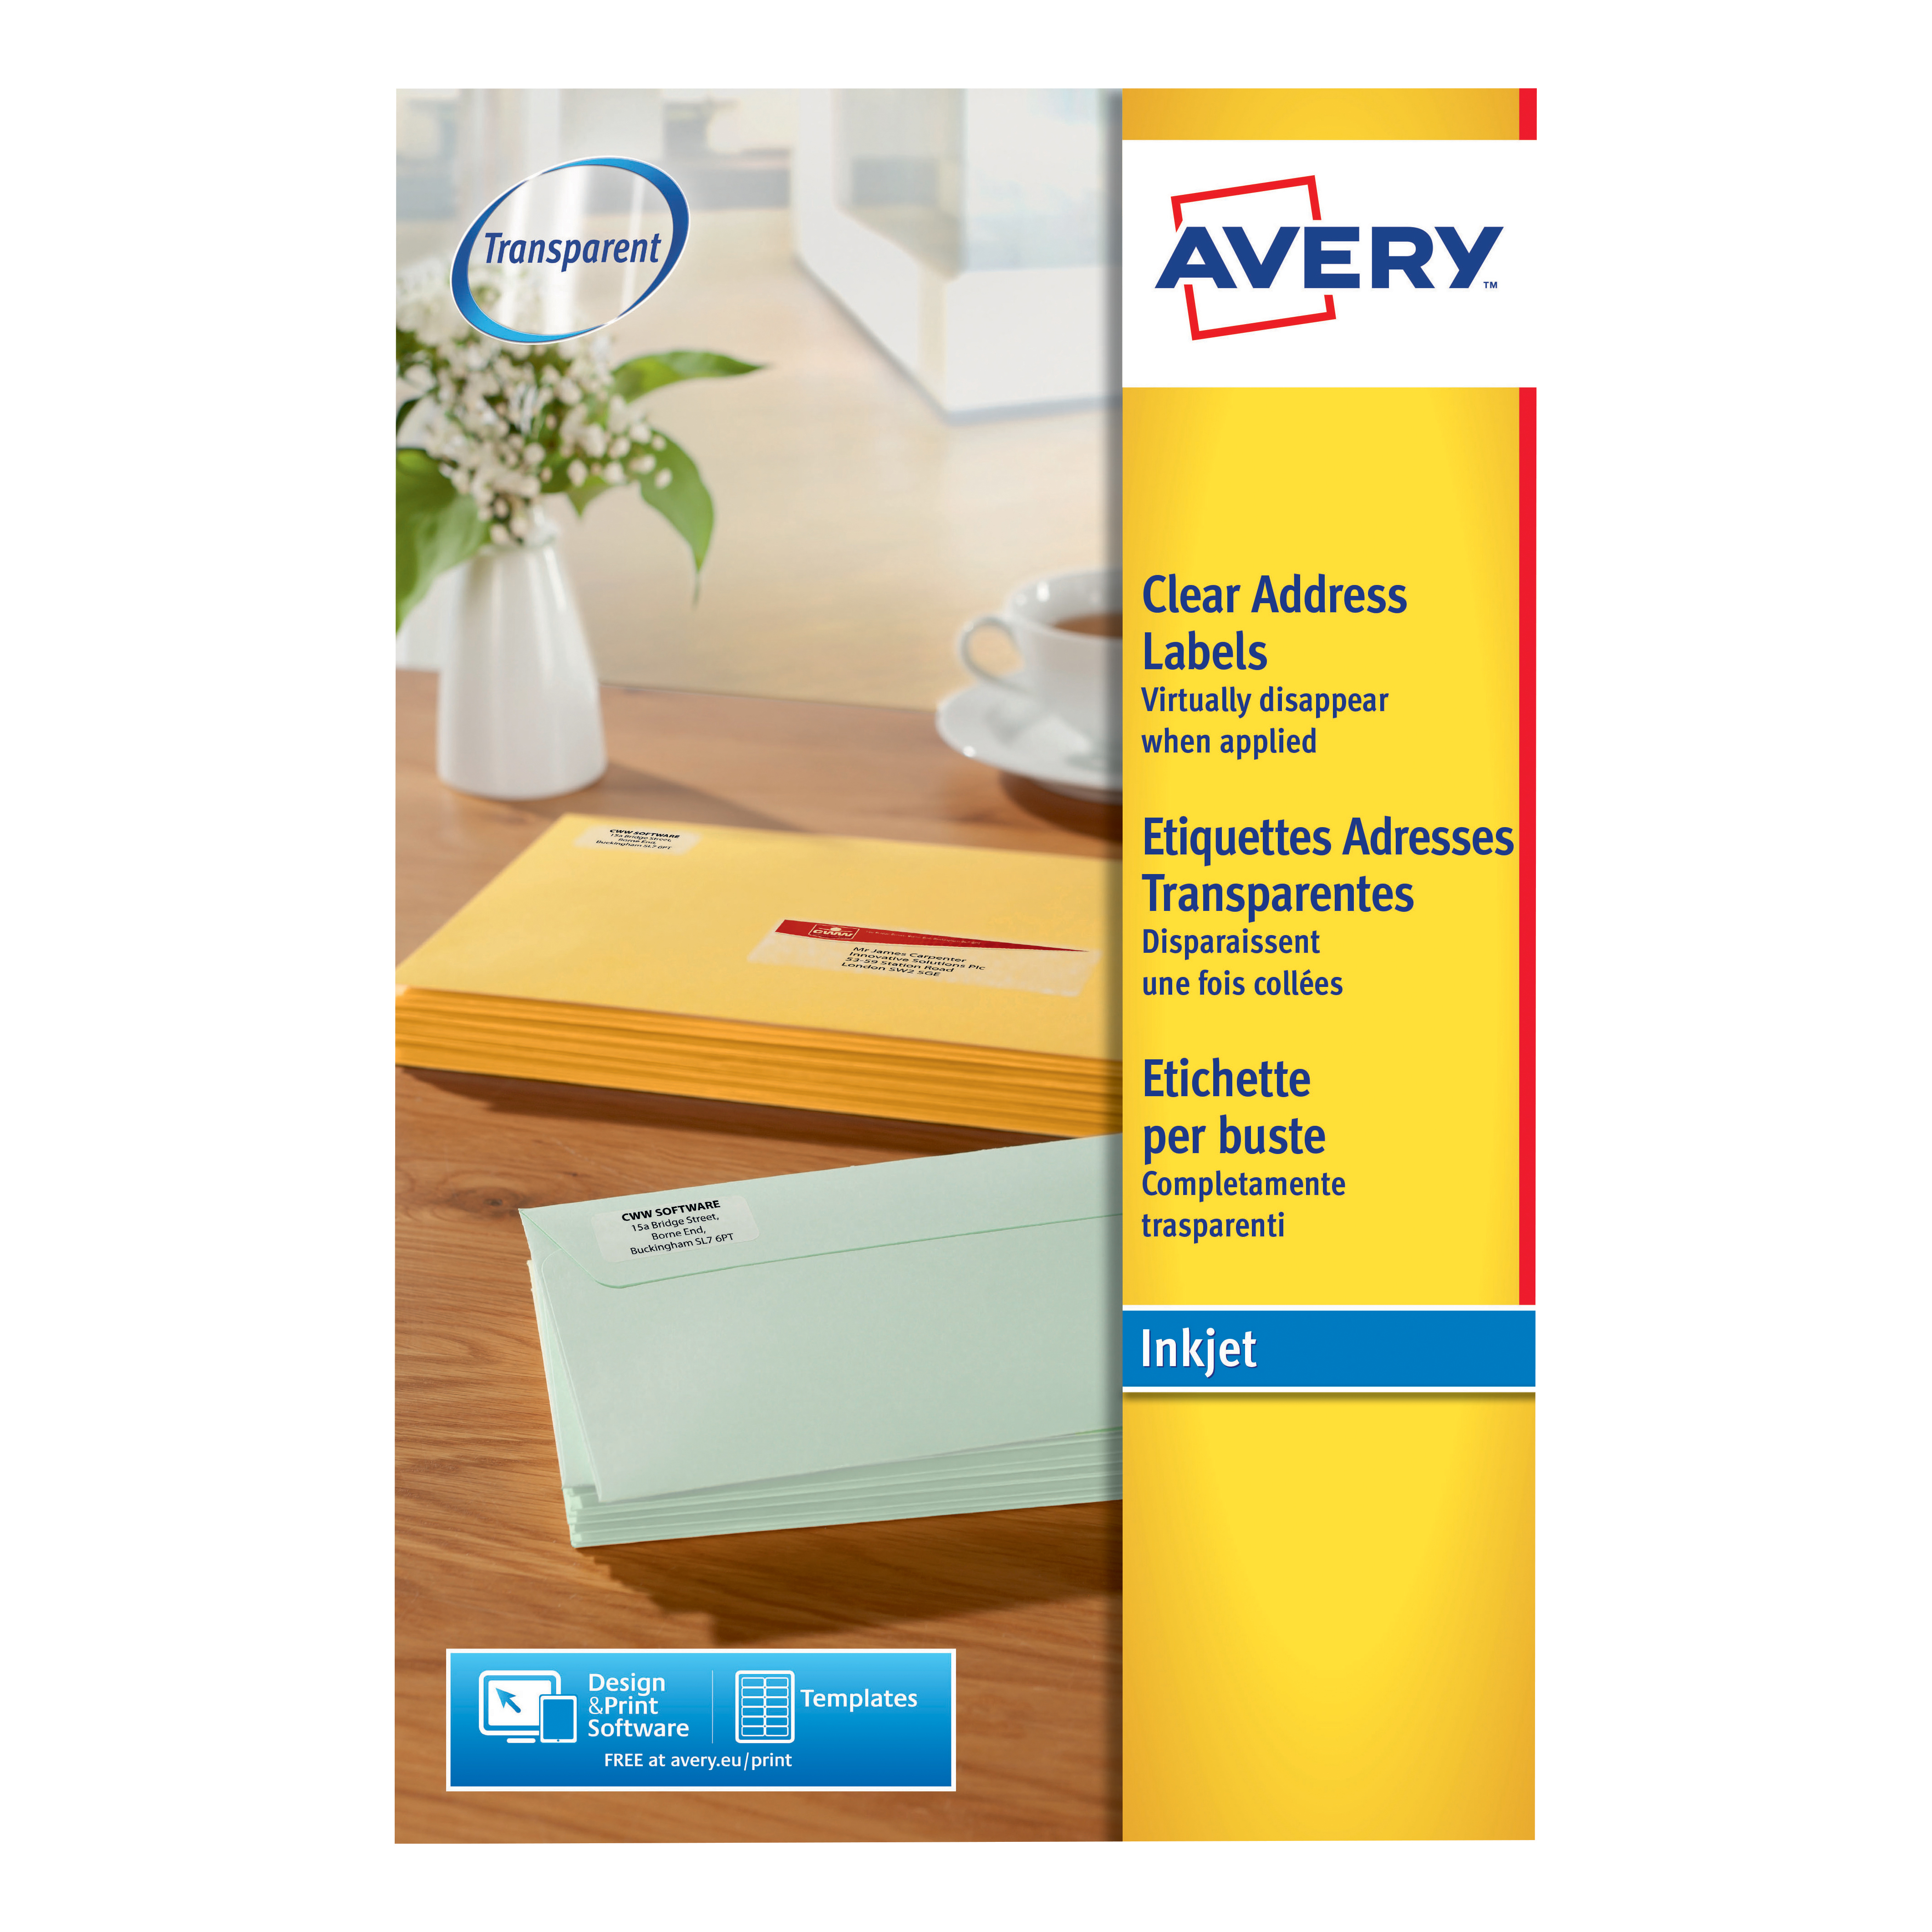 Avery Addressing Labels InkJet 14 per Sheet 99.1x38.1mm Clear Ref J8563-25 350 Labels